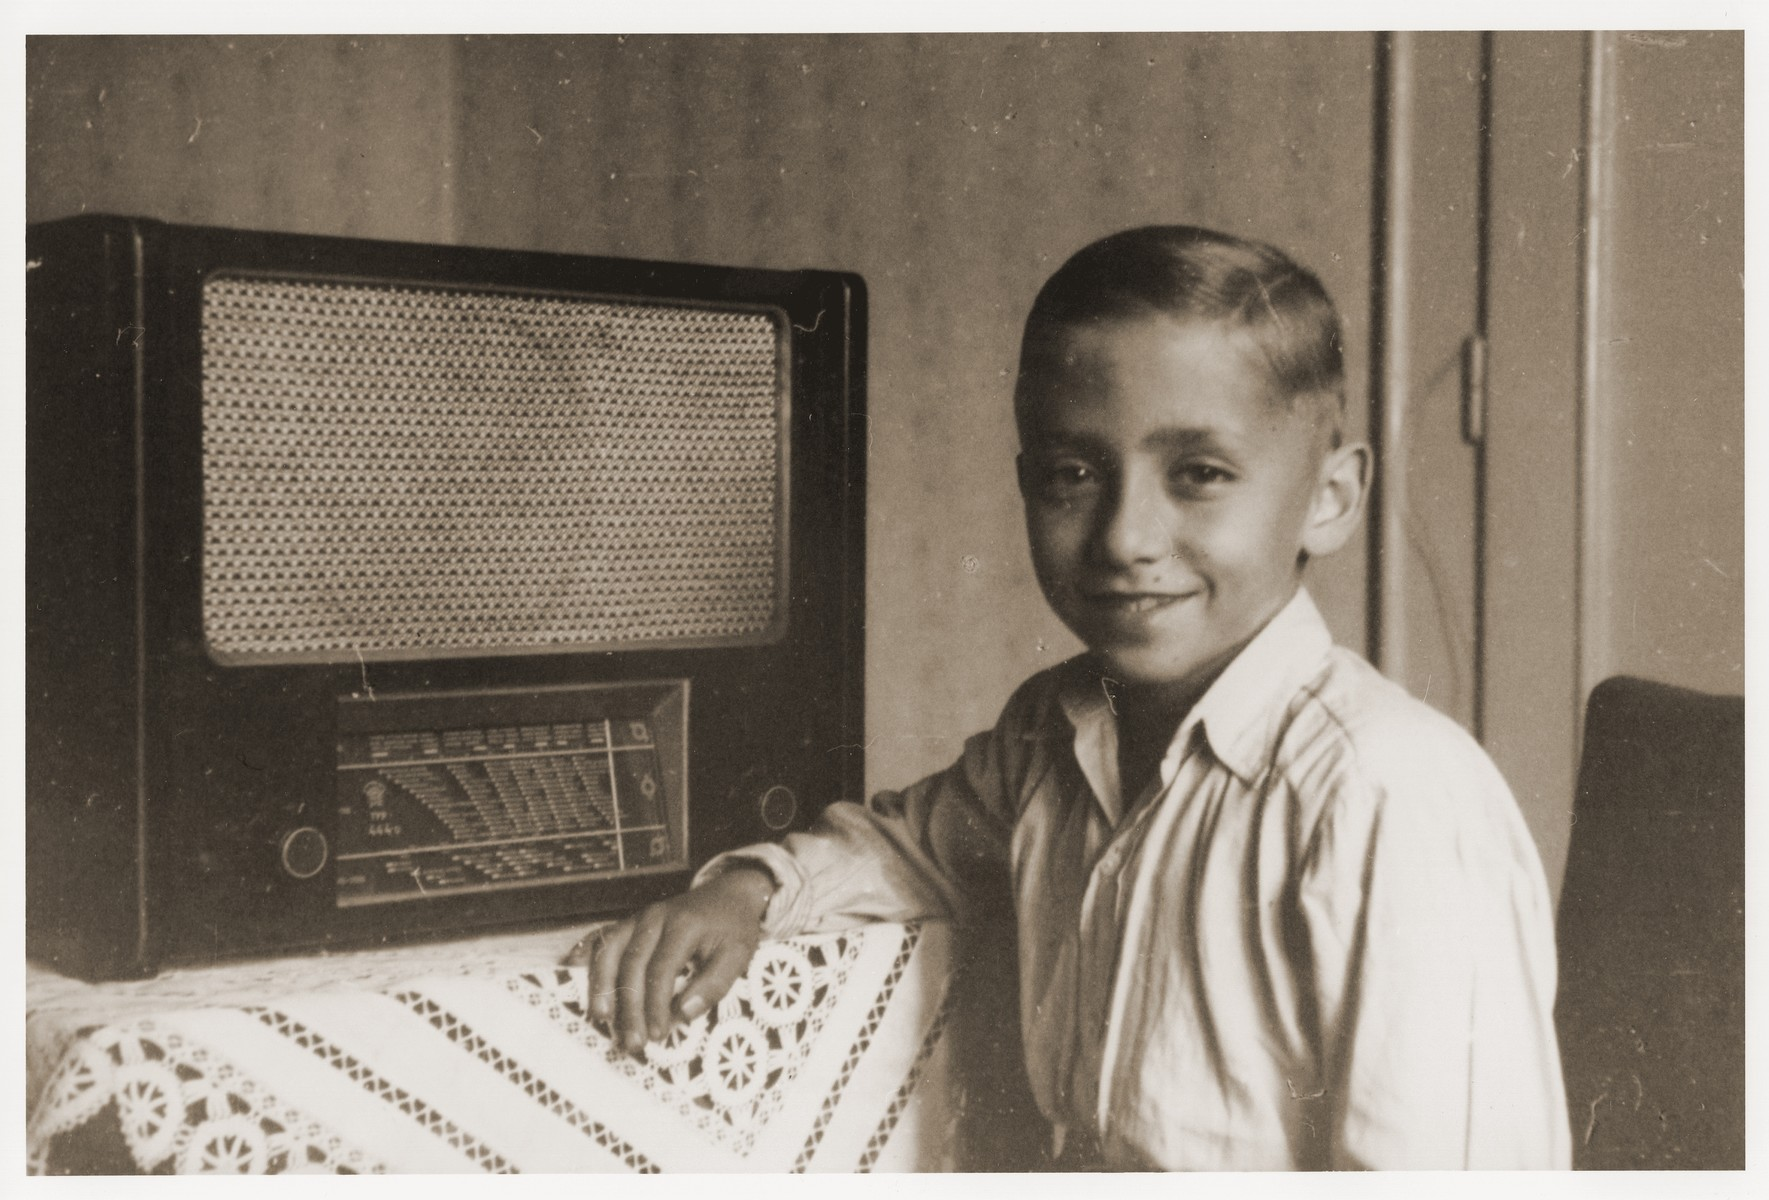 Rene Guttmann poses beside a large radio in the Mann family home in Kosice.